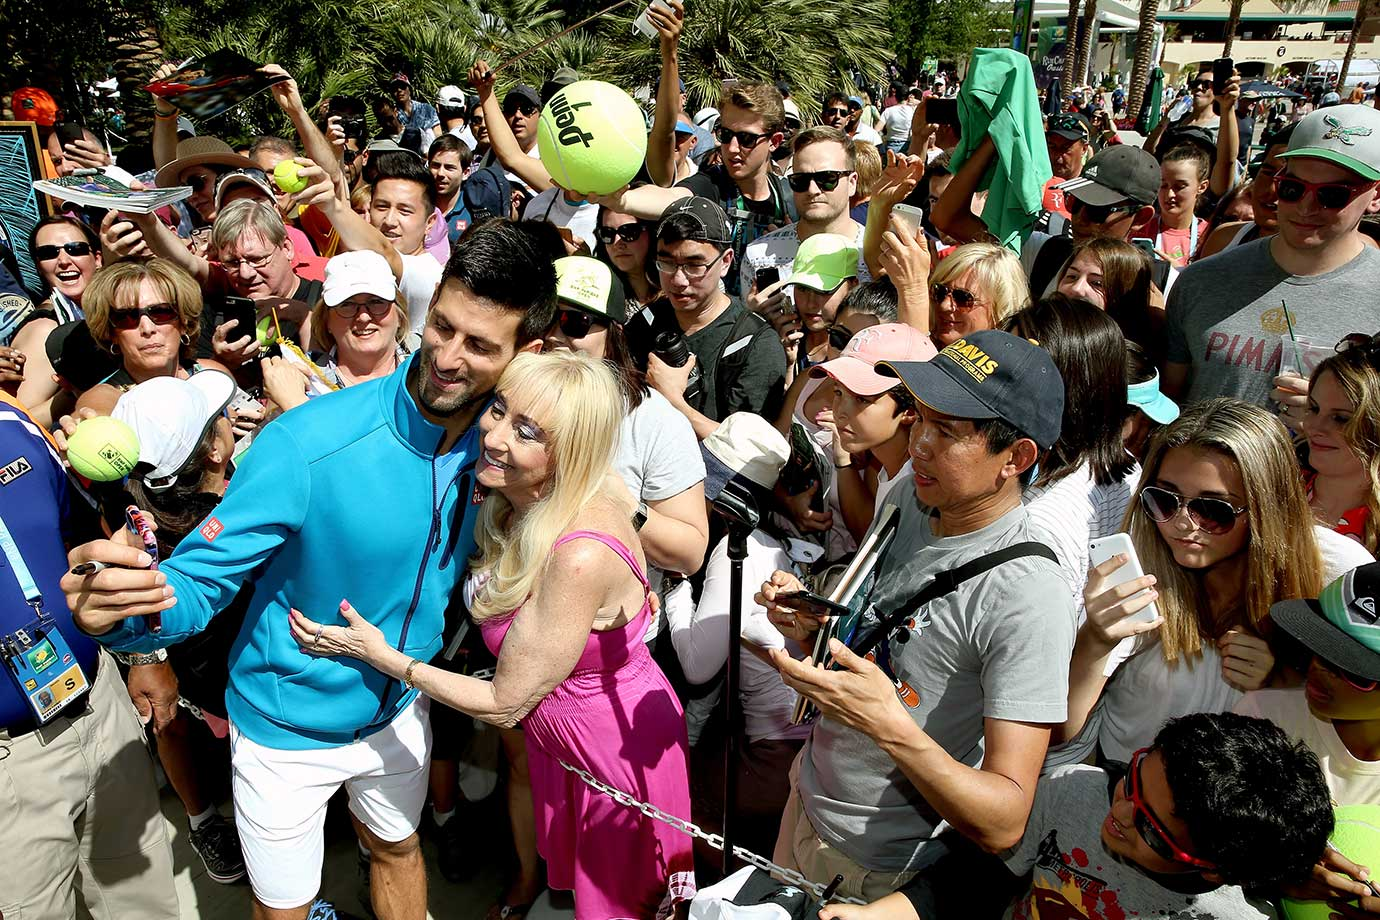 Novak Djokovic poses for a selfie with a fan as he signs autographs during the BNP Paribas Open in Indian Wells, Calif.